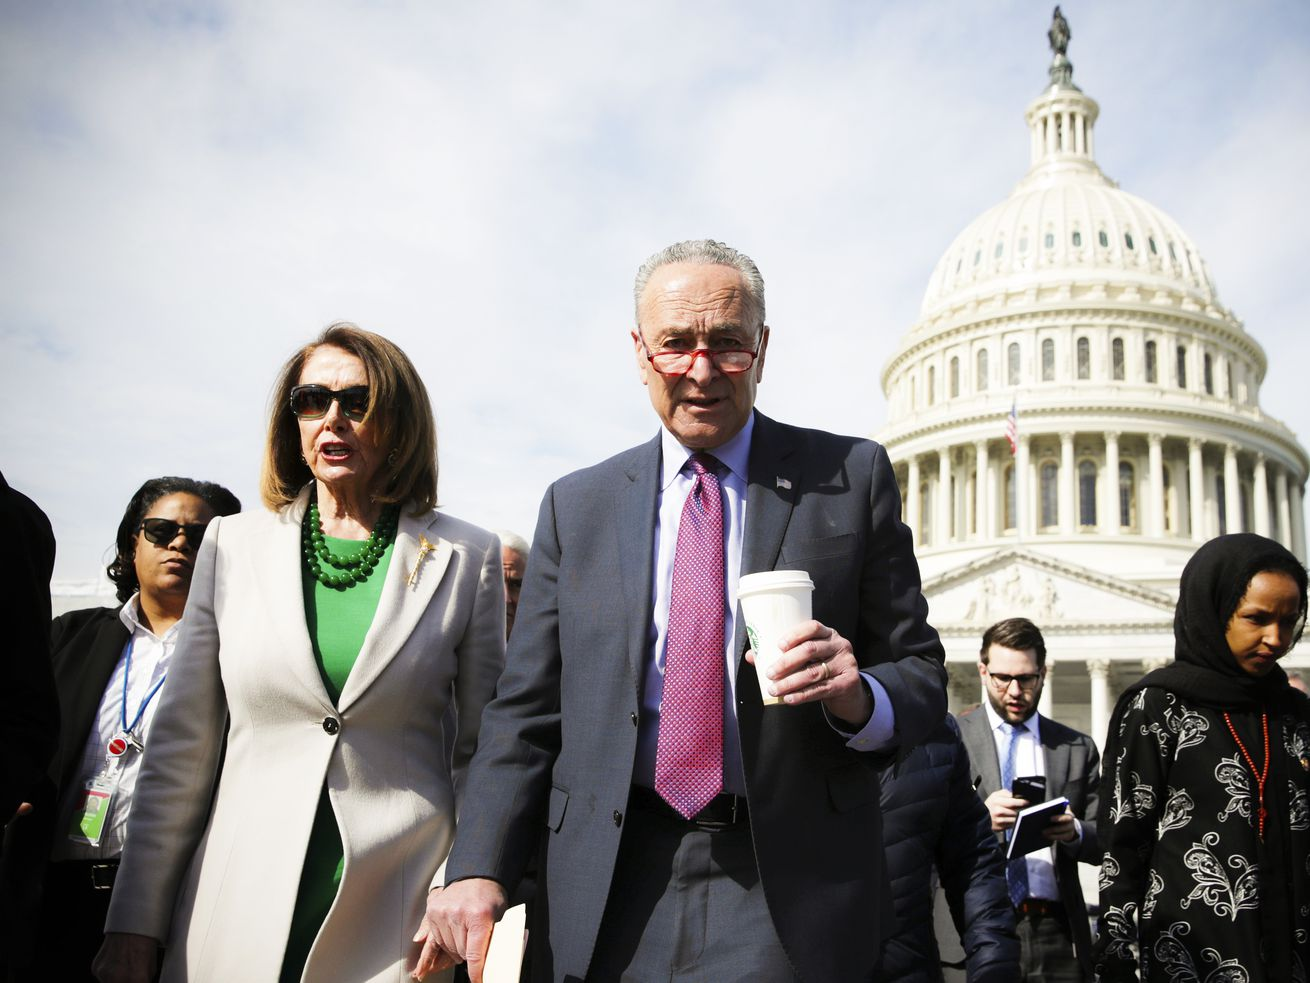 House Speaker Nancy Pelosi, Senate Majority Leader Chuck Schumer, and Rep. Ilhan Omar (D-MN) walk toward the Supreme Court on April 2, 2019. Schumer is tasked with trying to flip the Senate blue in 2020.